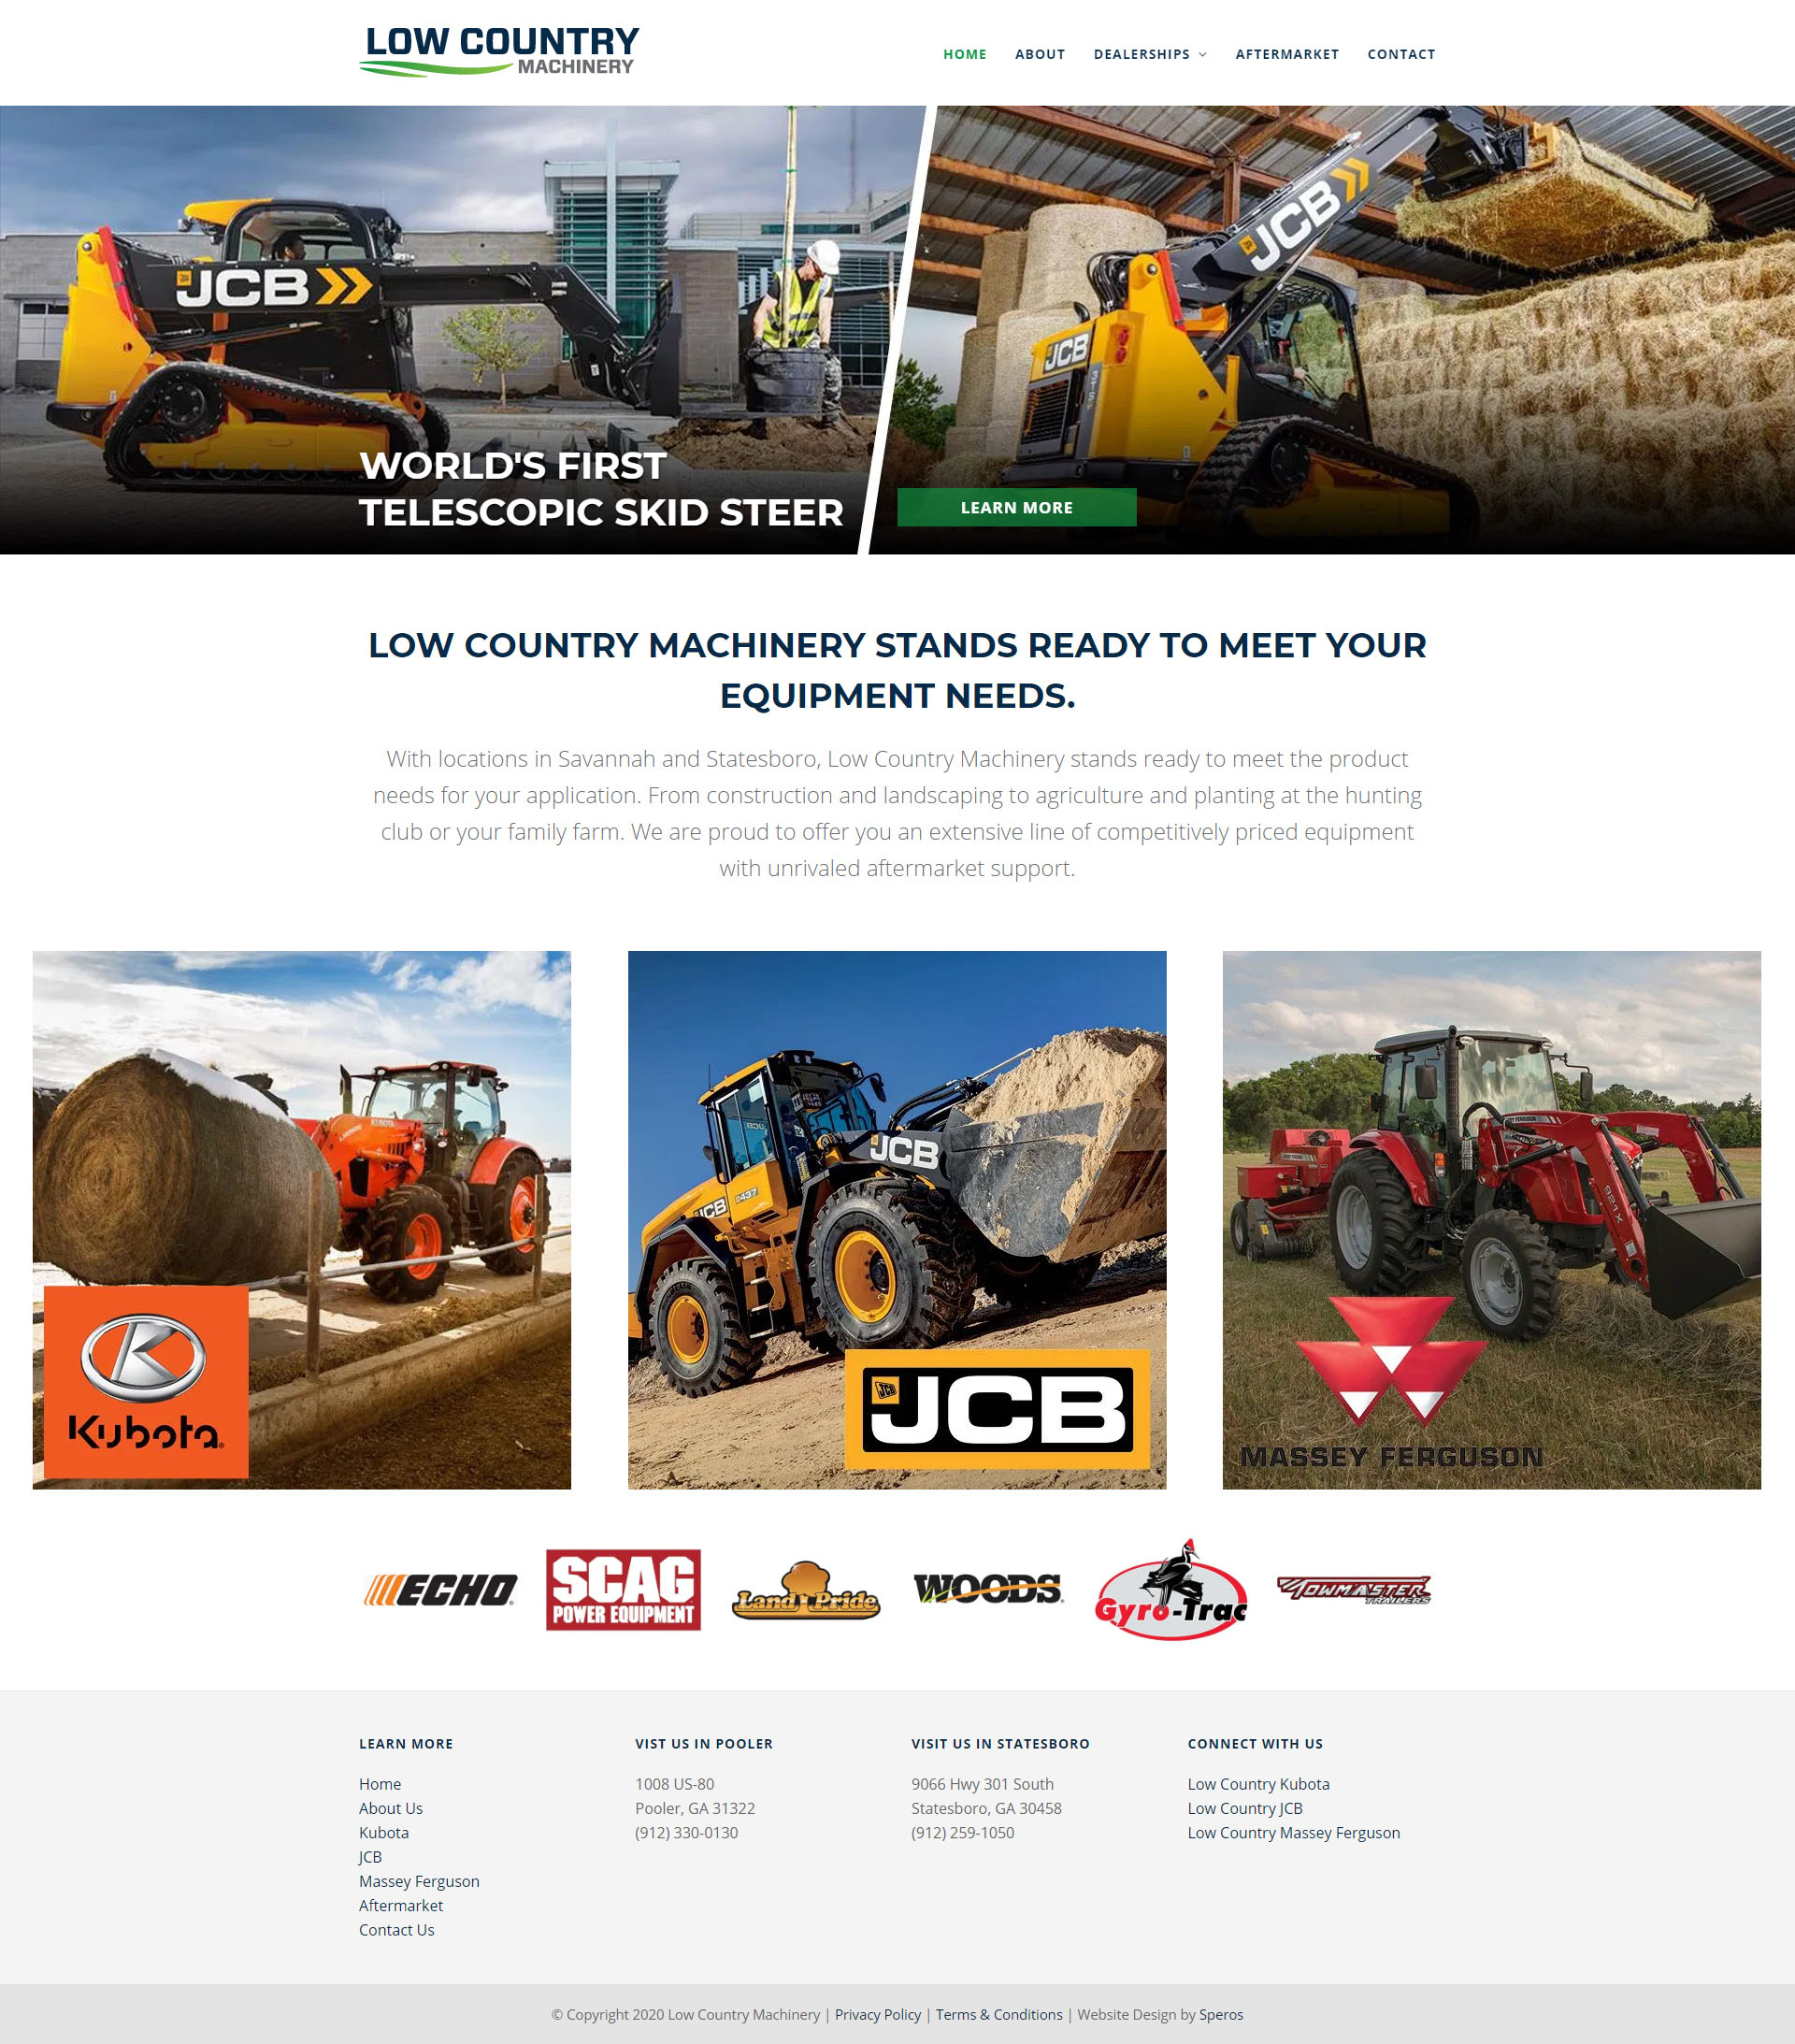 Low Country Machinery website - Speros - Savannah, GA